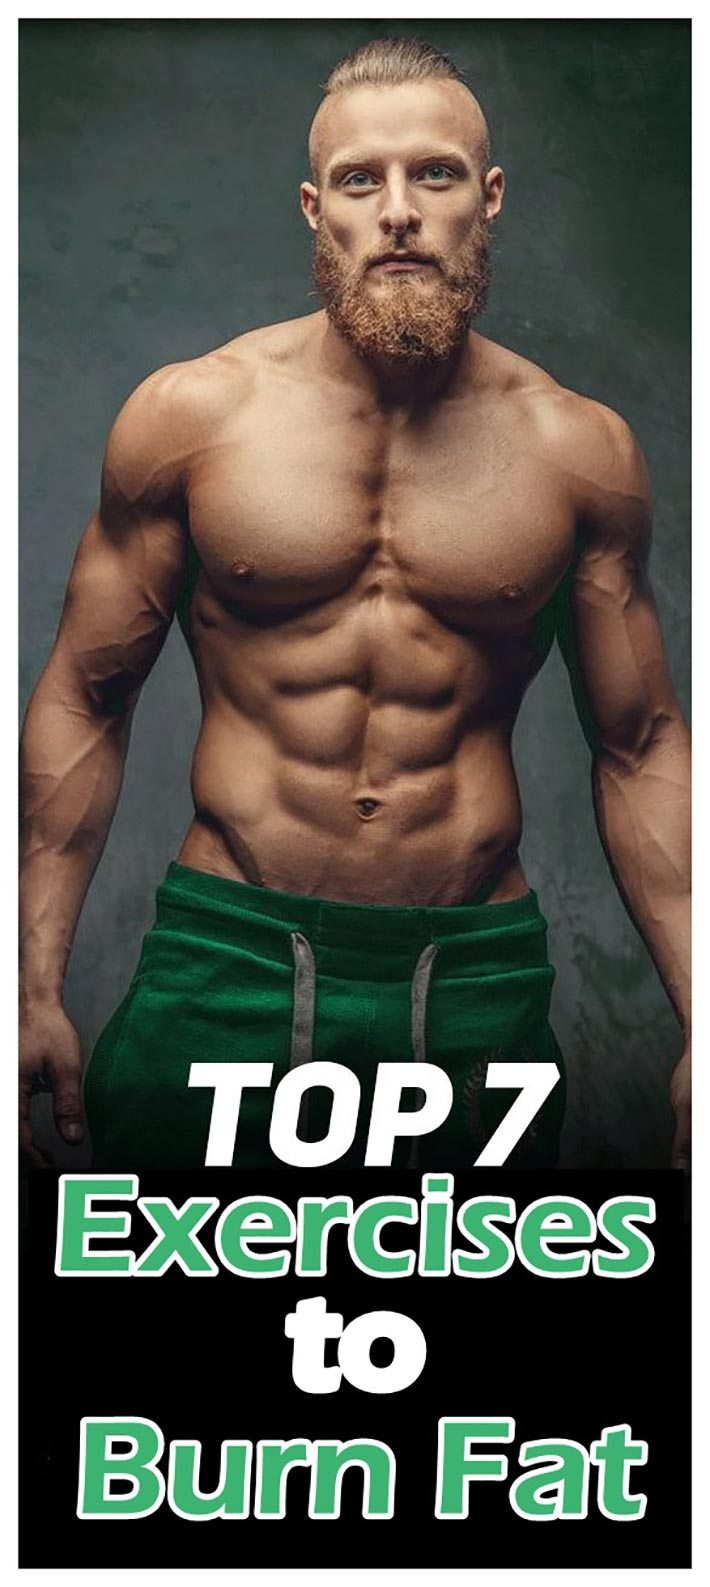 The most extreme weight loss methods revealed: Top 7 Best ...